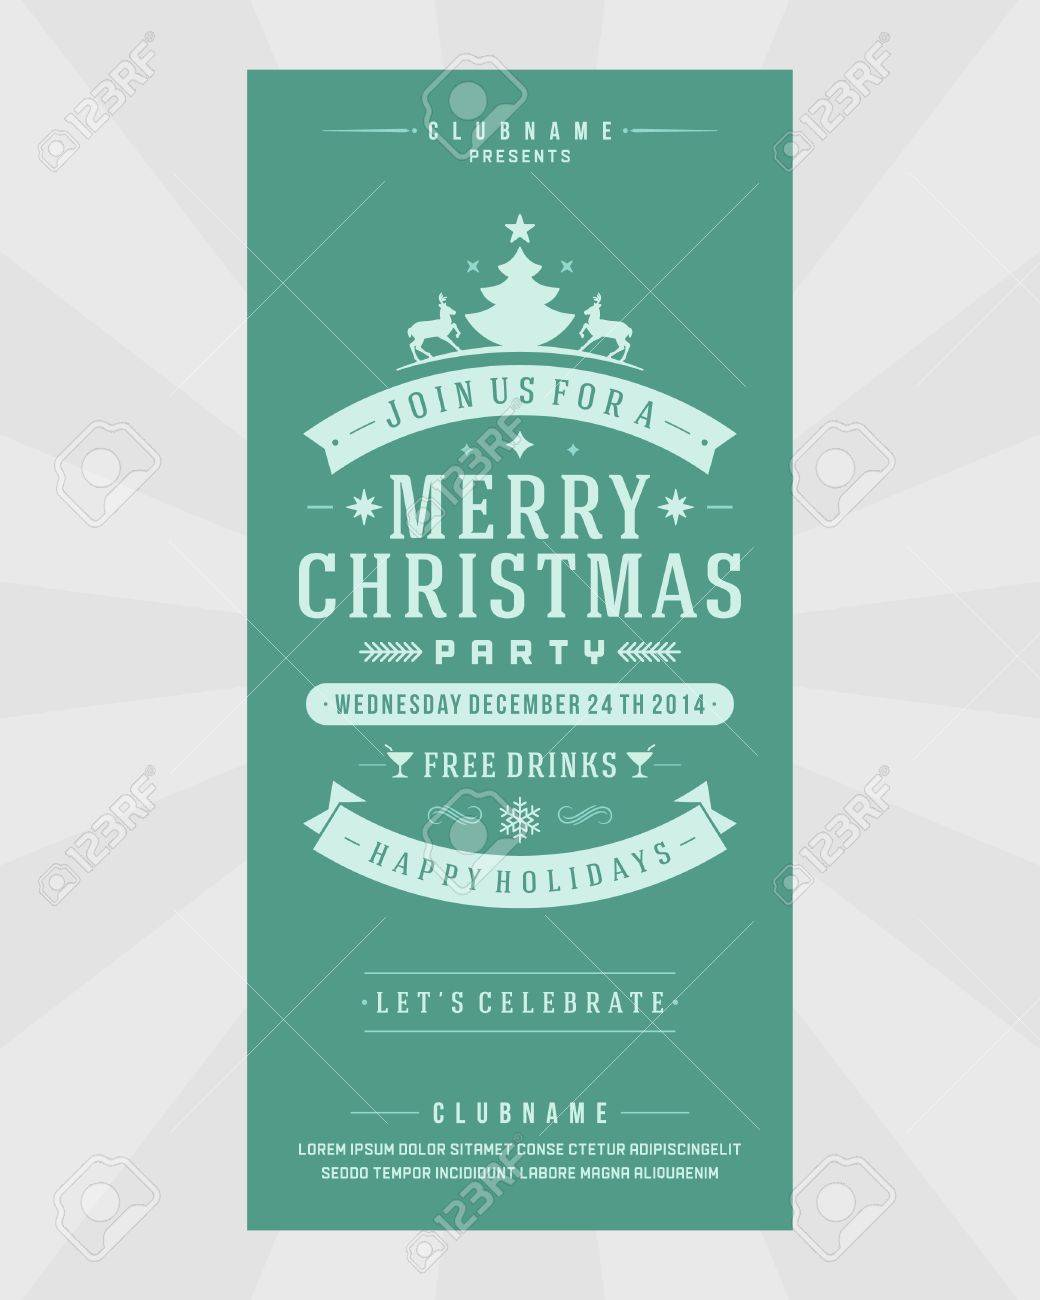 christmas flyer template cliparts stock vector and royalty christmas flyer template christmas party invitation retro typography and or nt decoration christmas holidays flyer